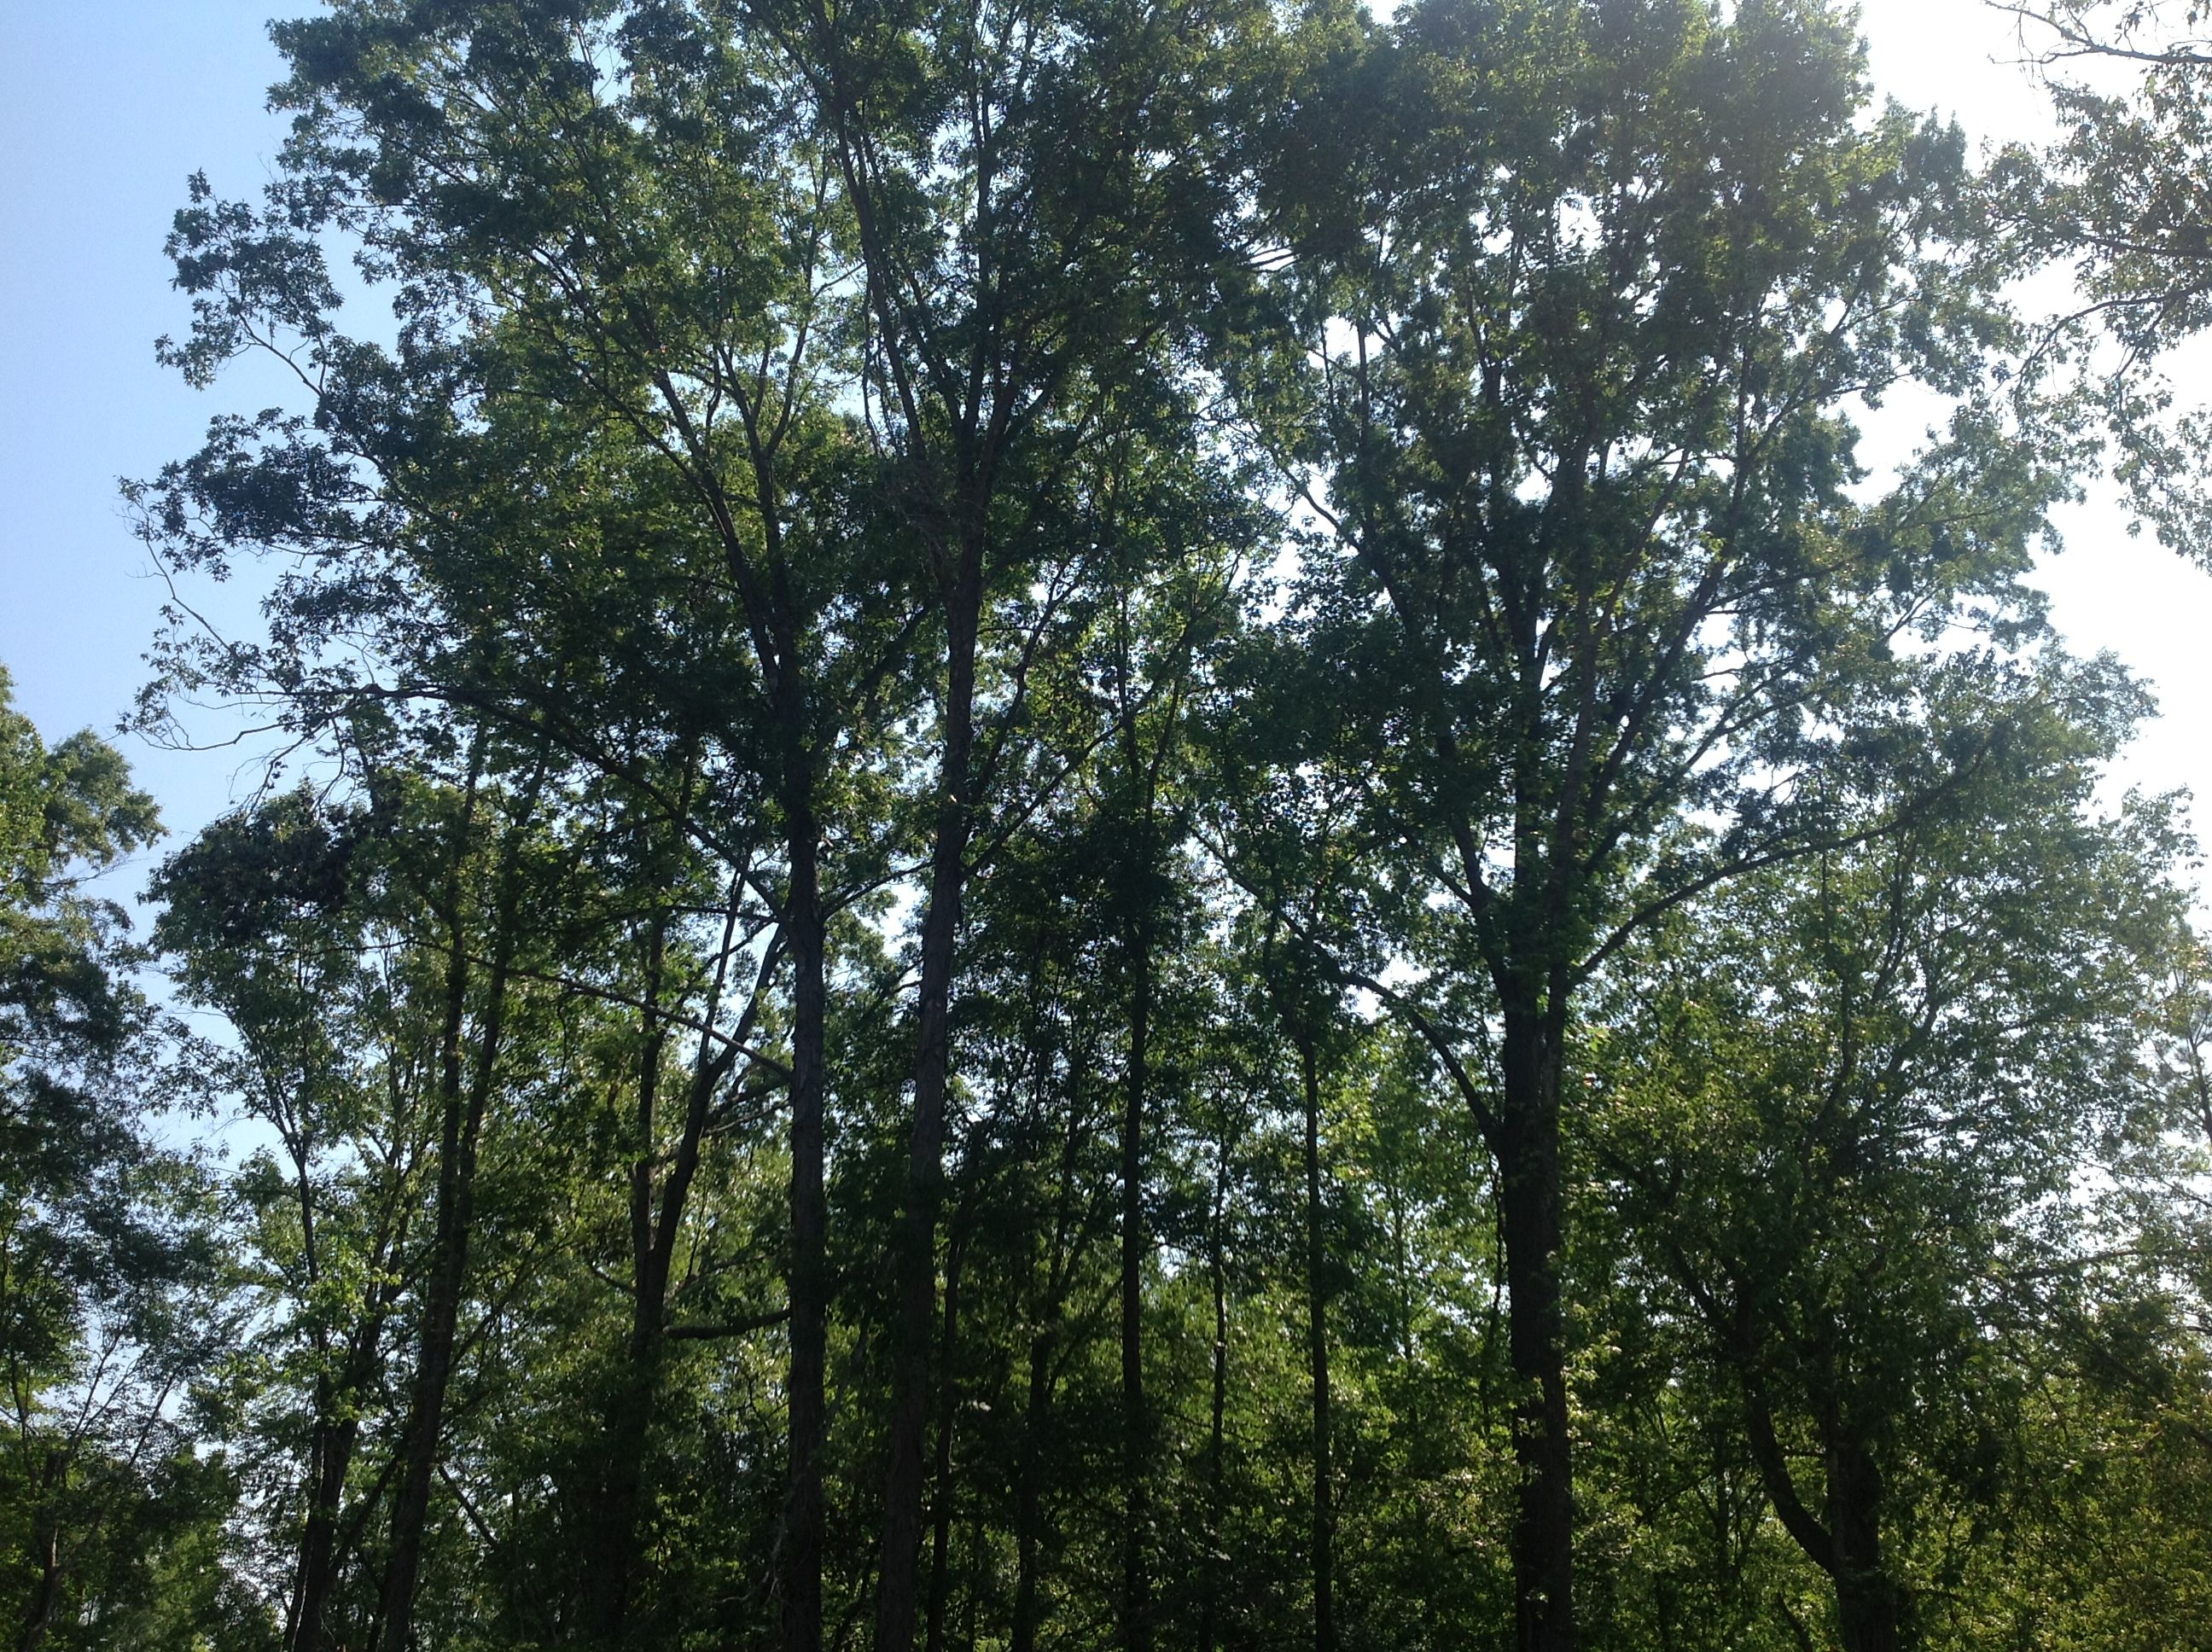 Land For Sale in Coosa County Alabama | The AlaLandMan Blog